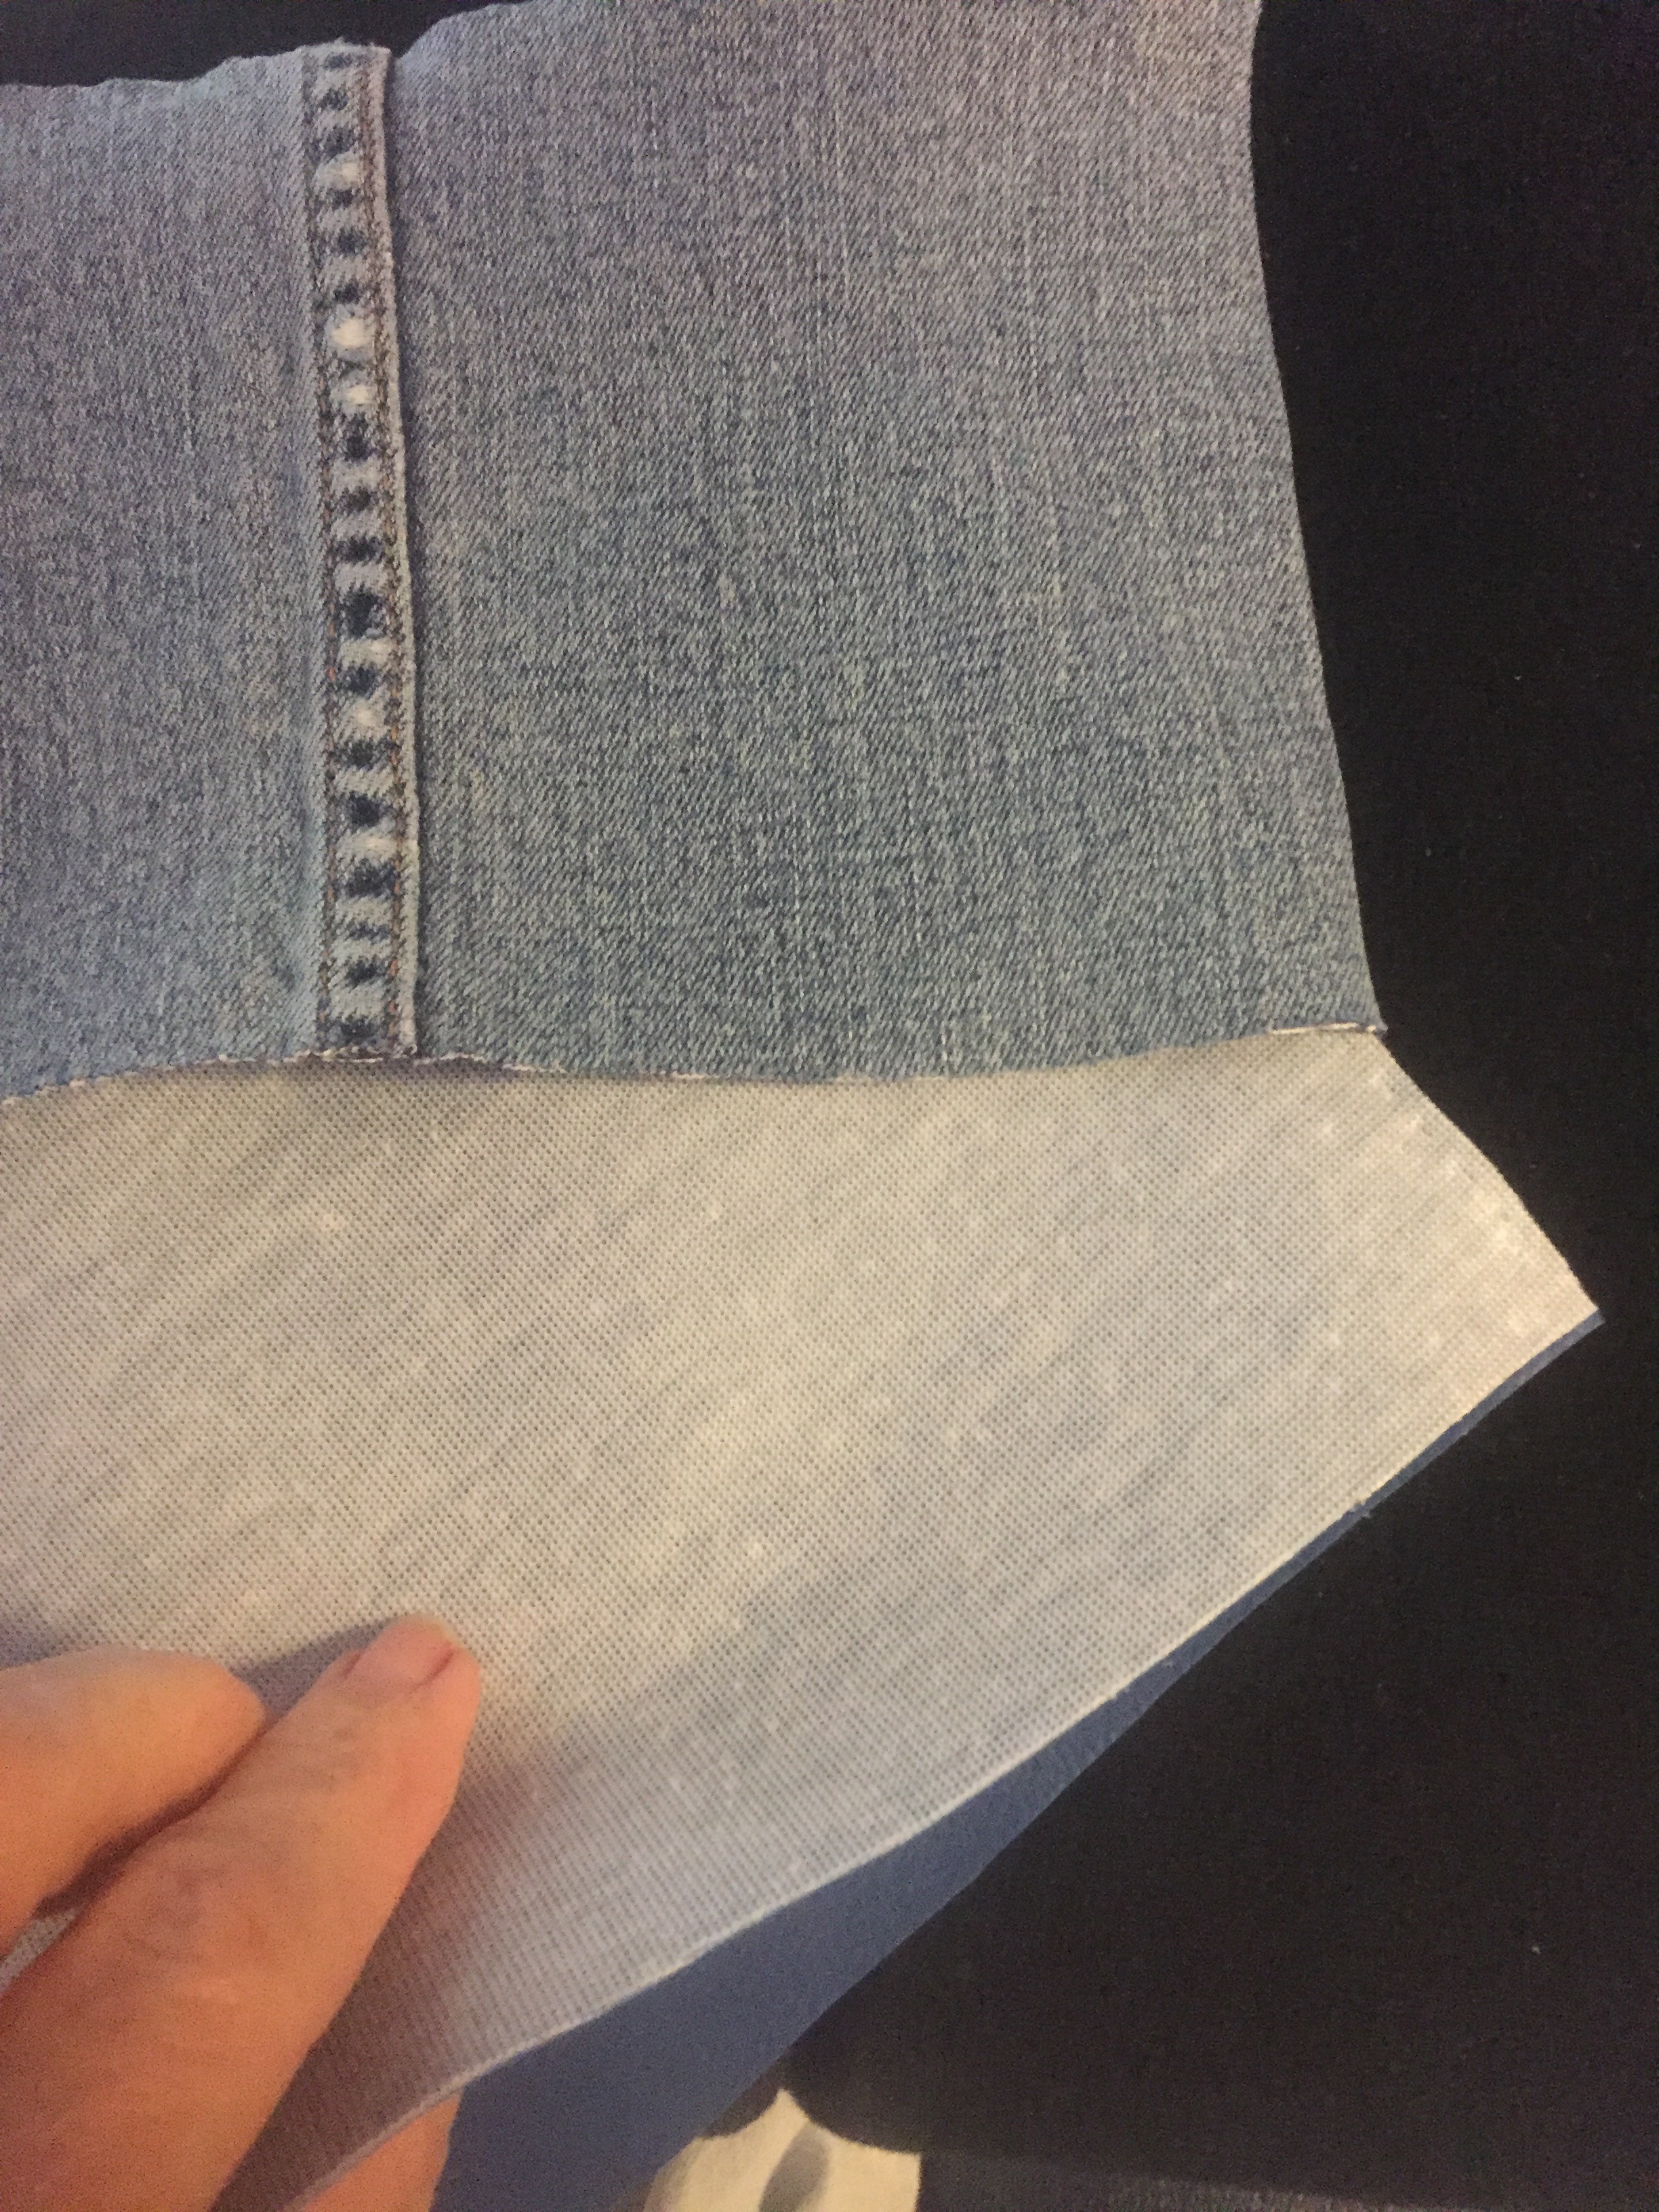 Picture of Insert the Vinyl Lining